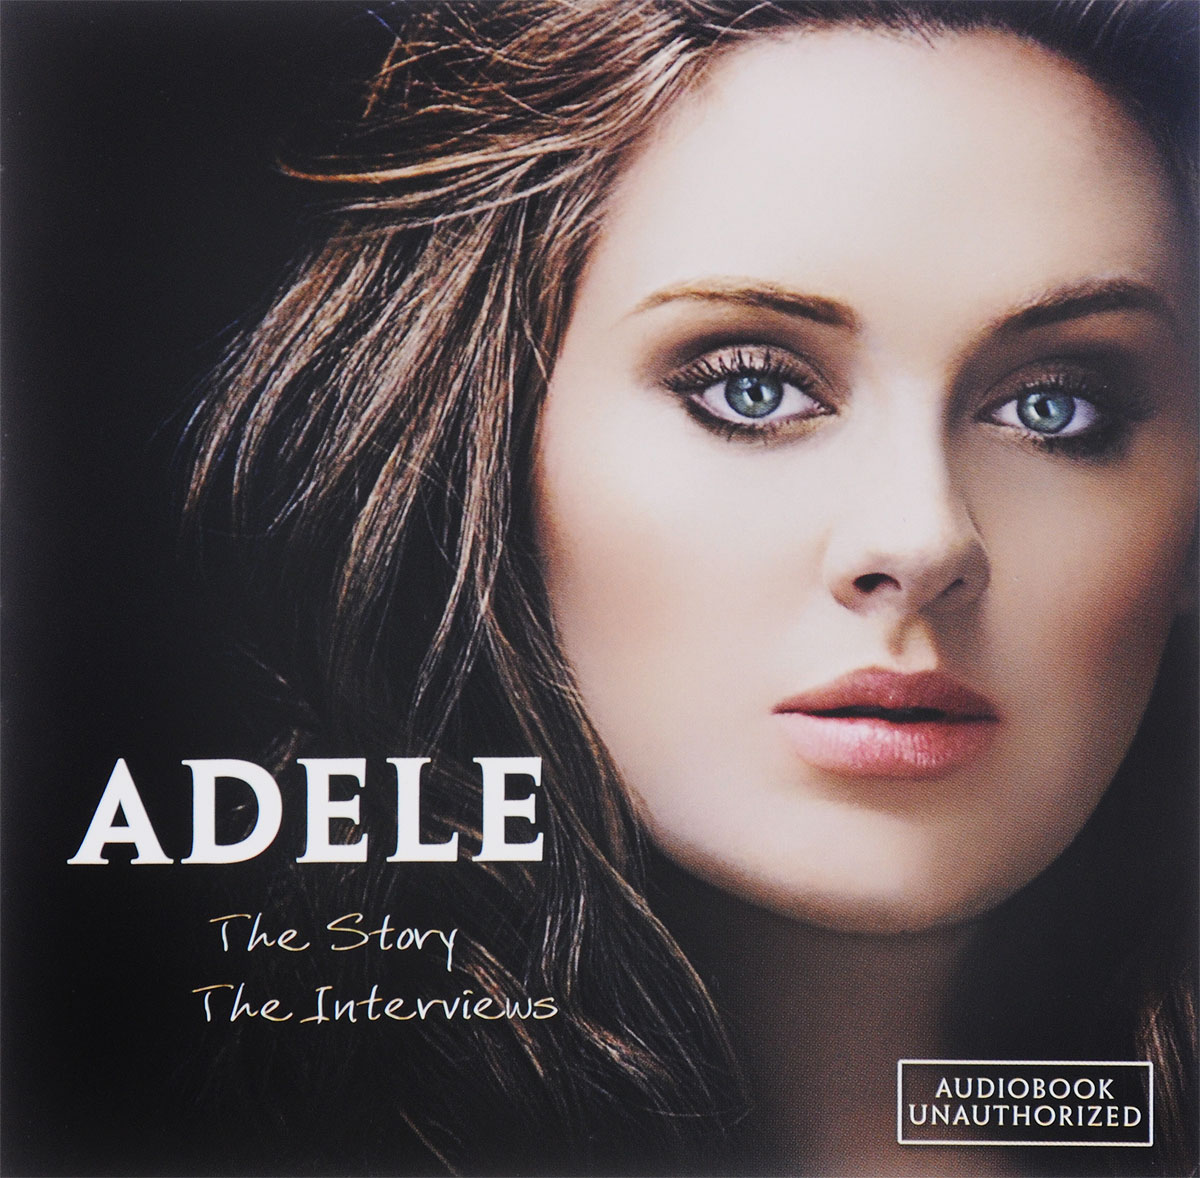 Adele Adele. The Story. The Interviews the hole story